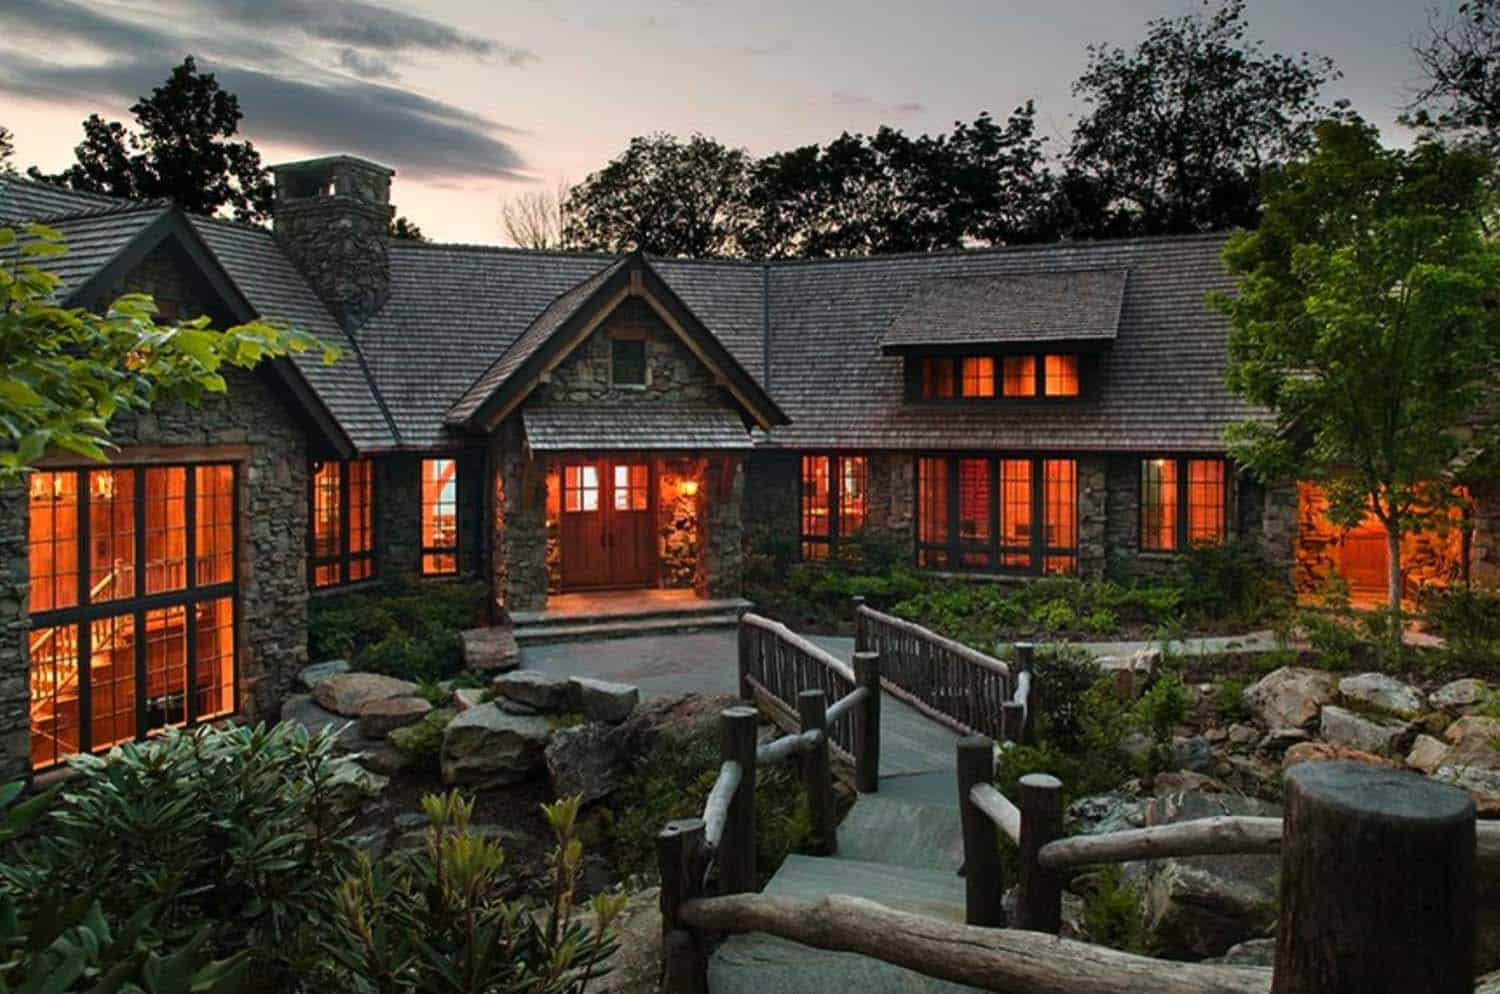 Dreamy cabin retreat perched on a rocky mountainside in North Carolina